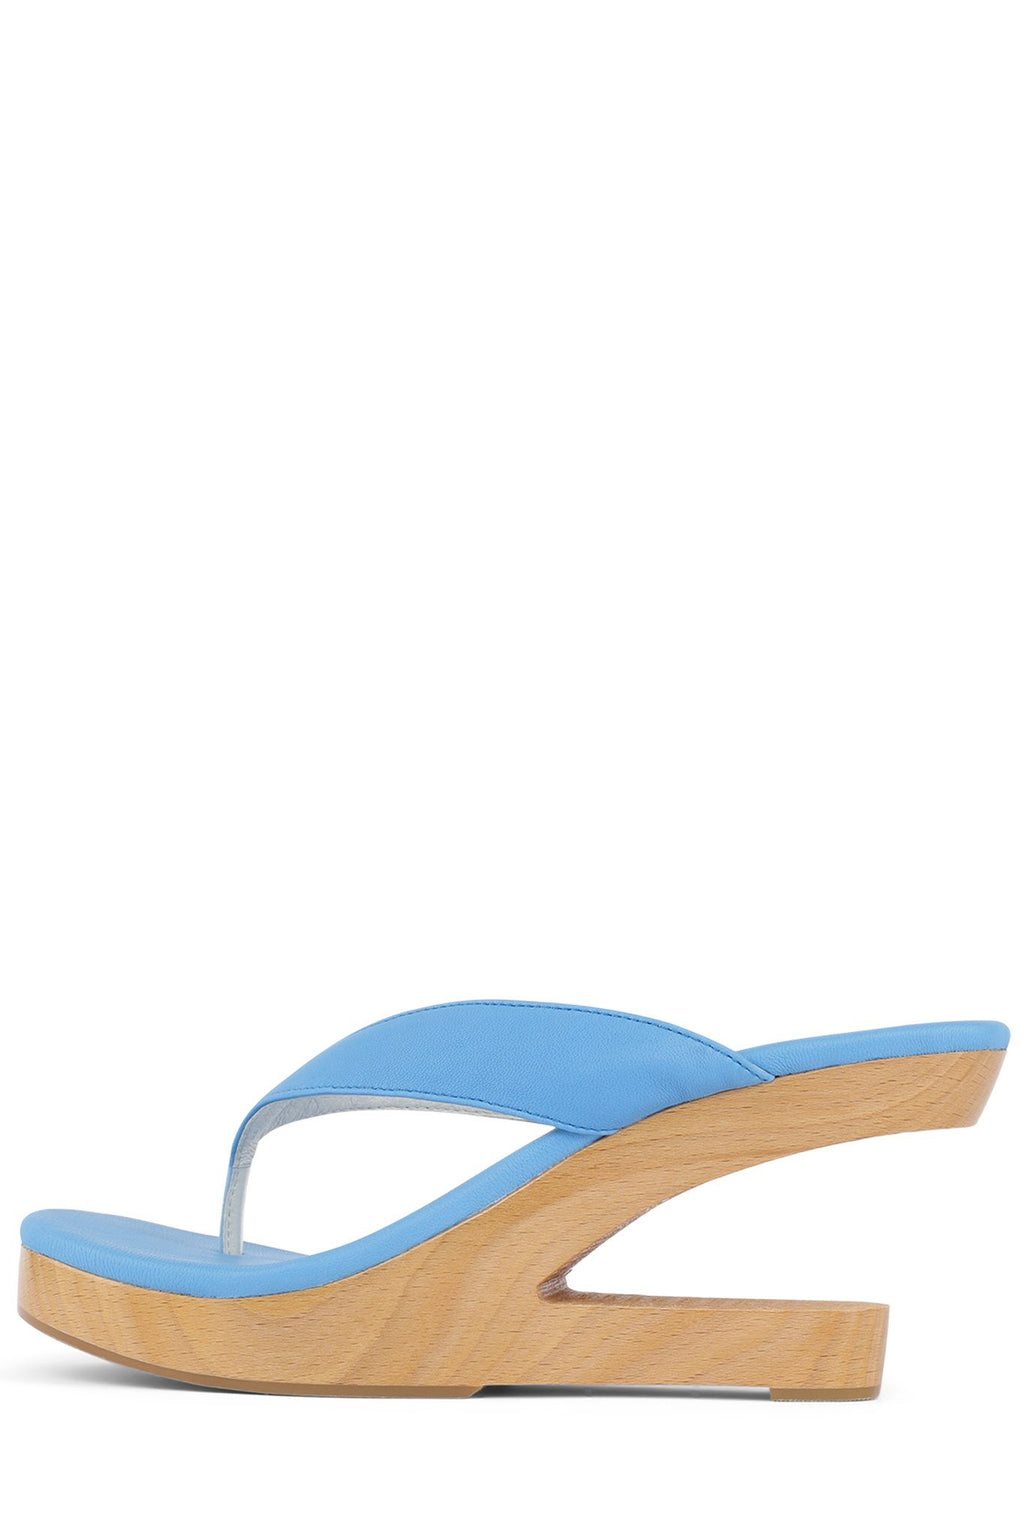 DREAMIN Wedge Sandal HS Blue 6